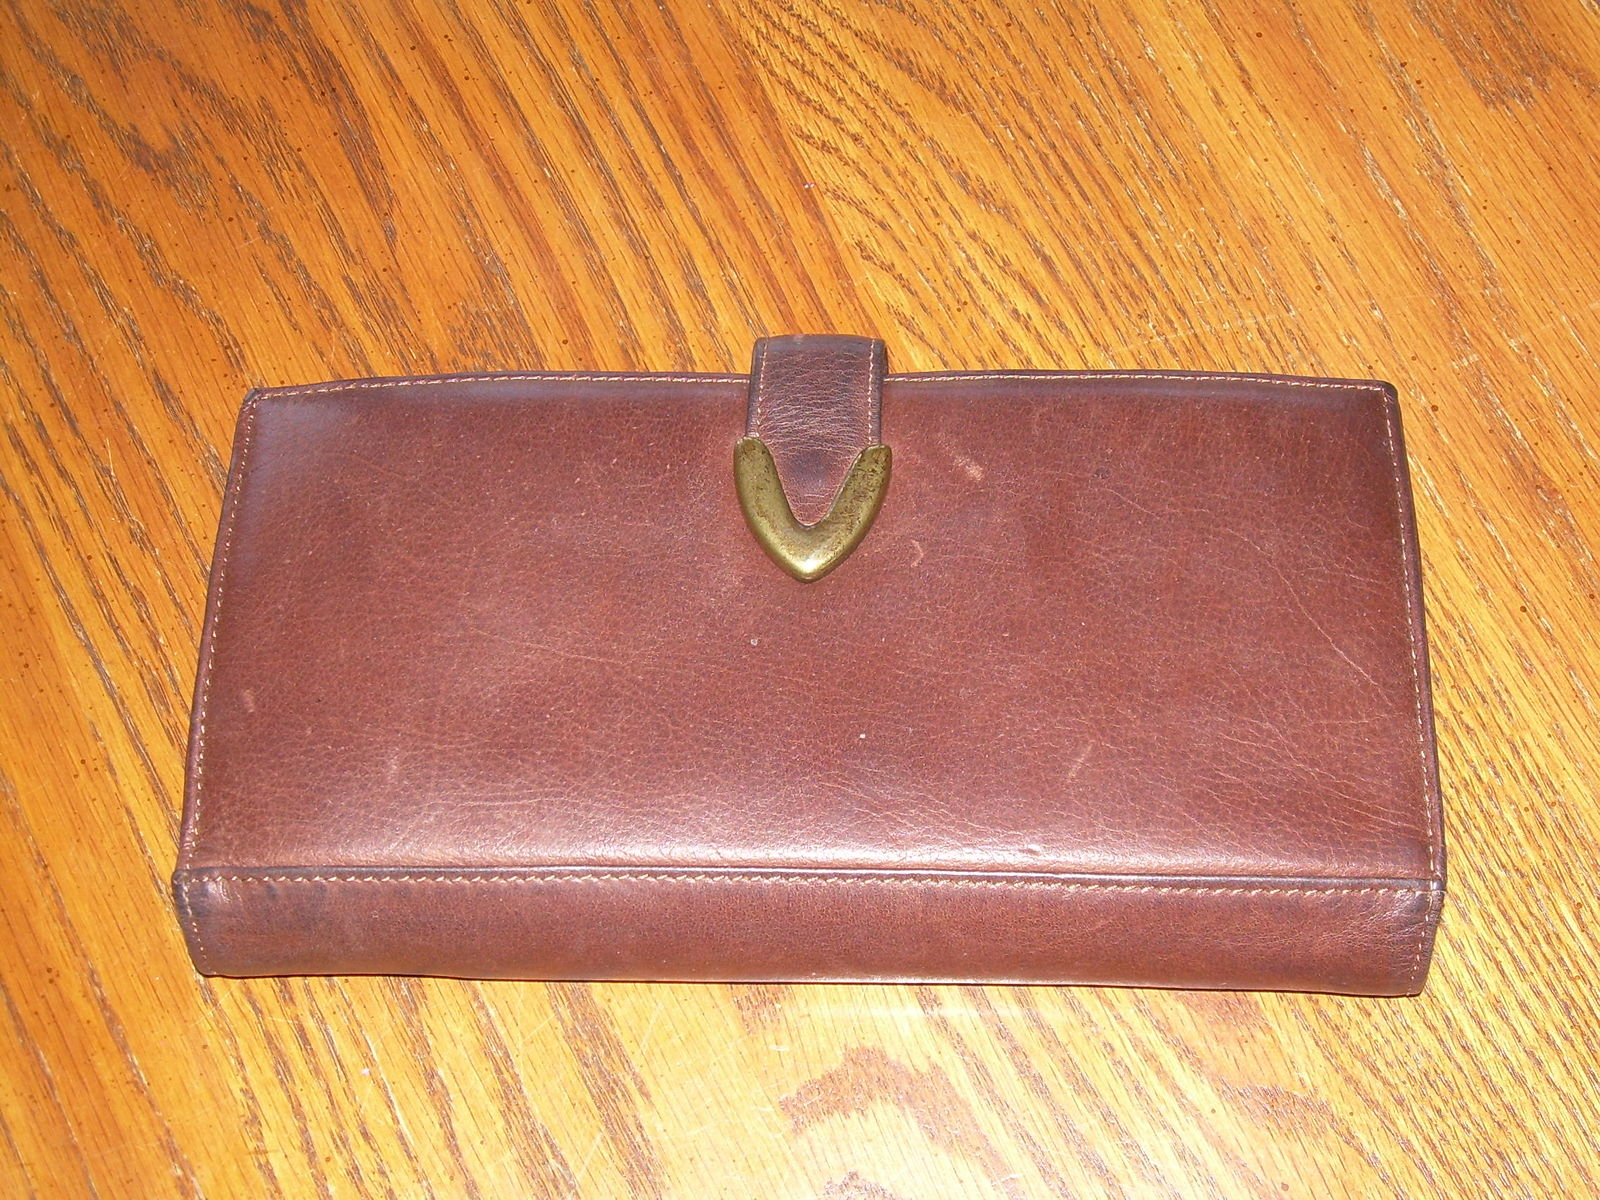 Boulder Ridge Wallet Brown Leather Travel And 50 Similar Items